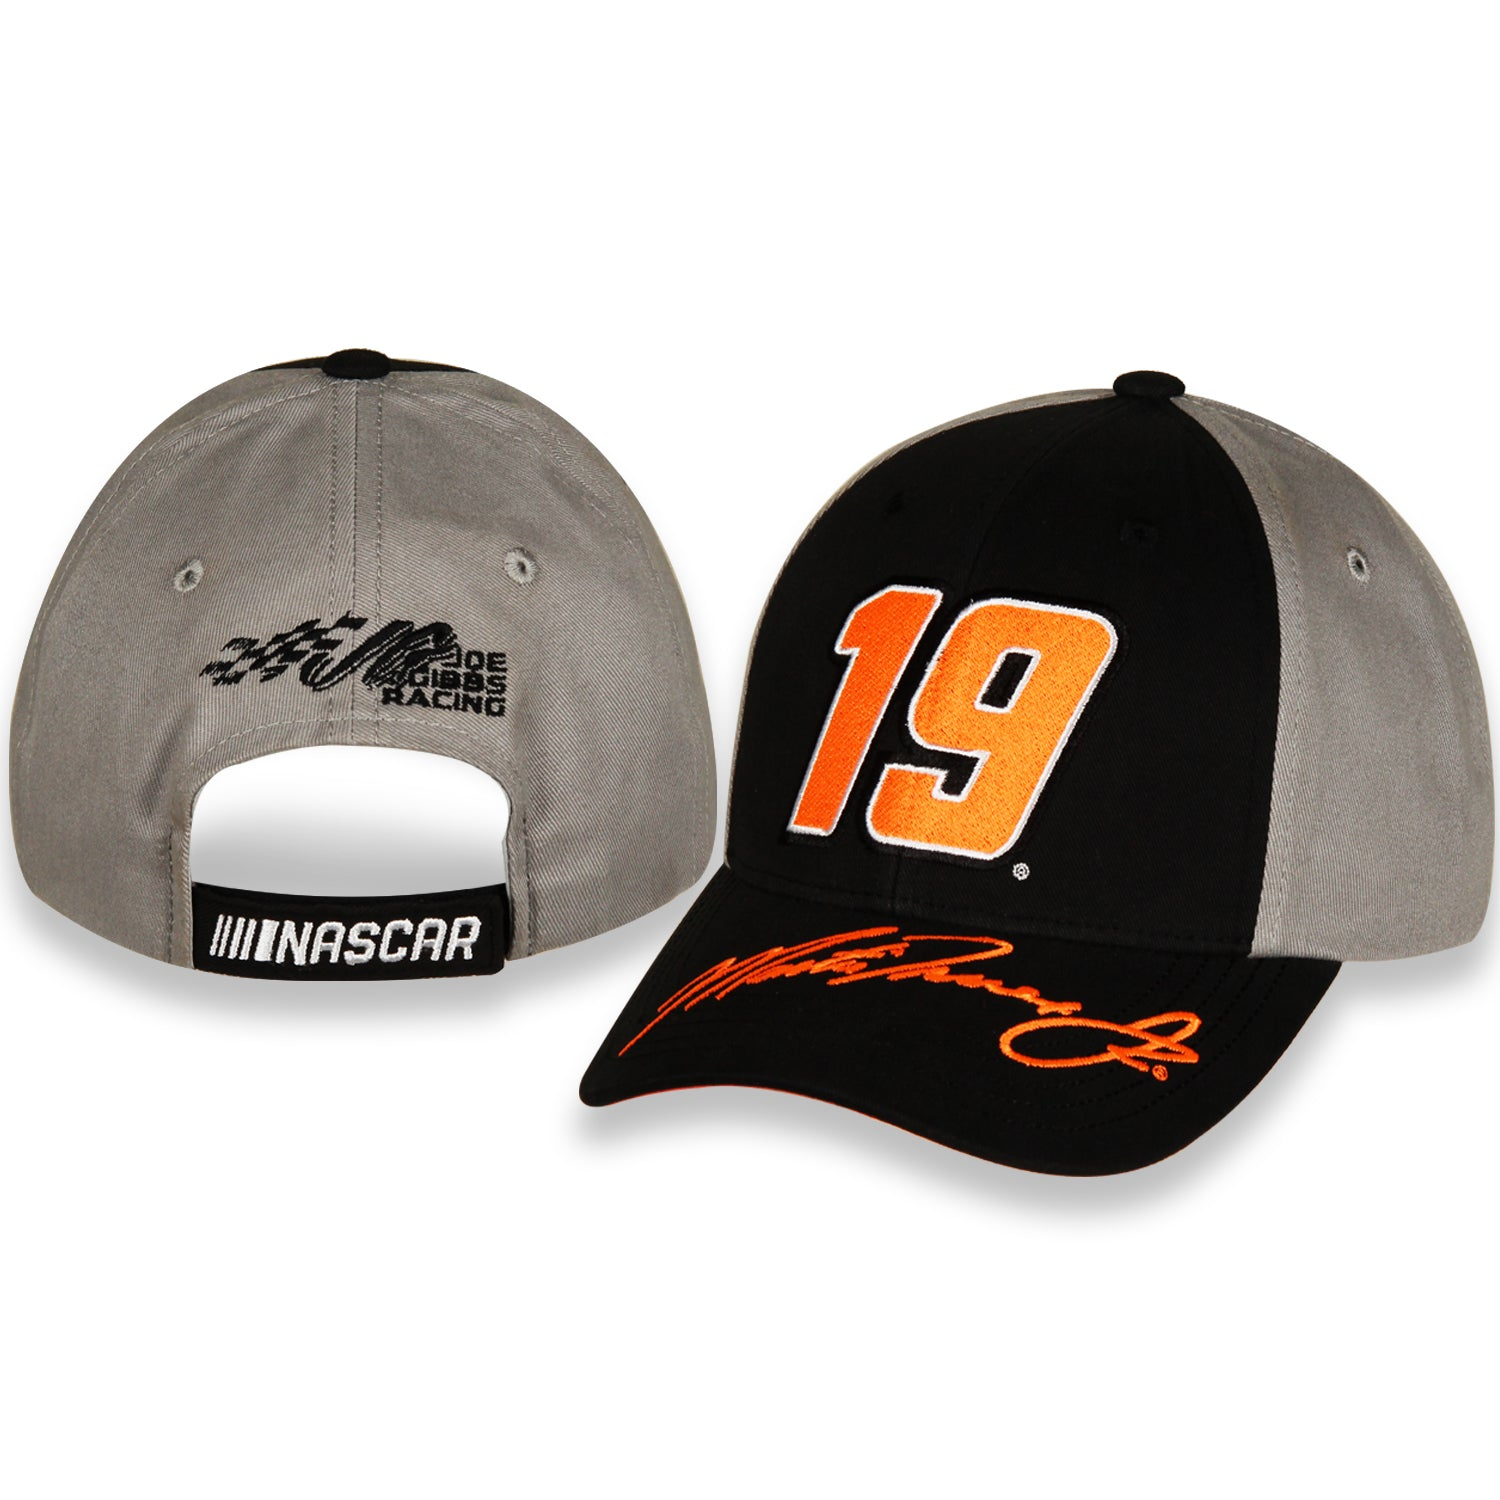 #19 Martin Truex Jr. BPS Stitched Autographed Youth Hat